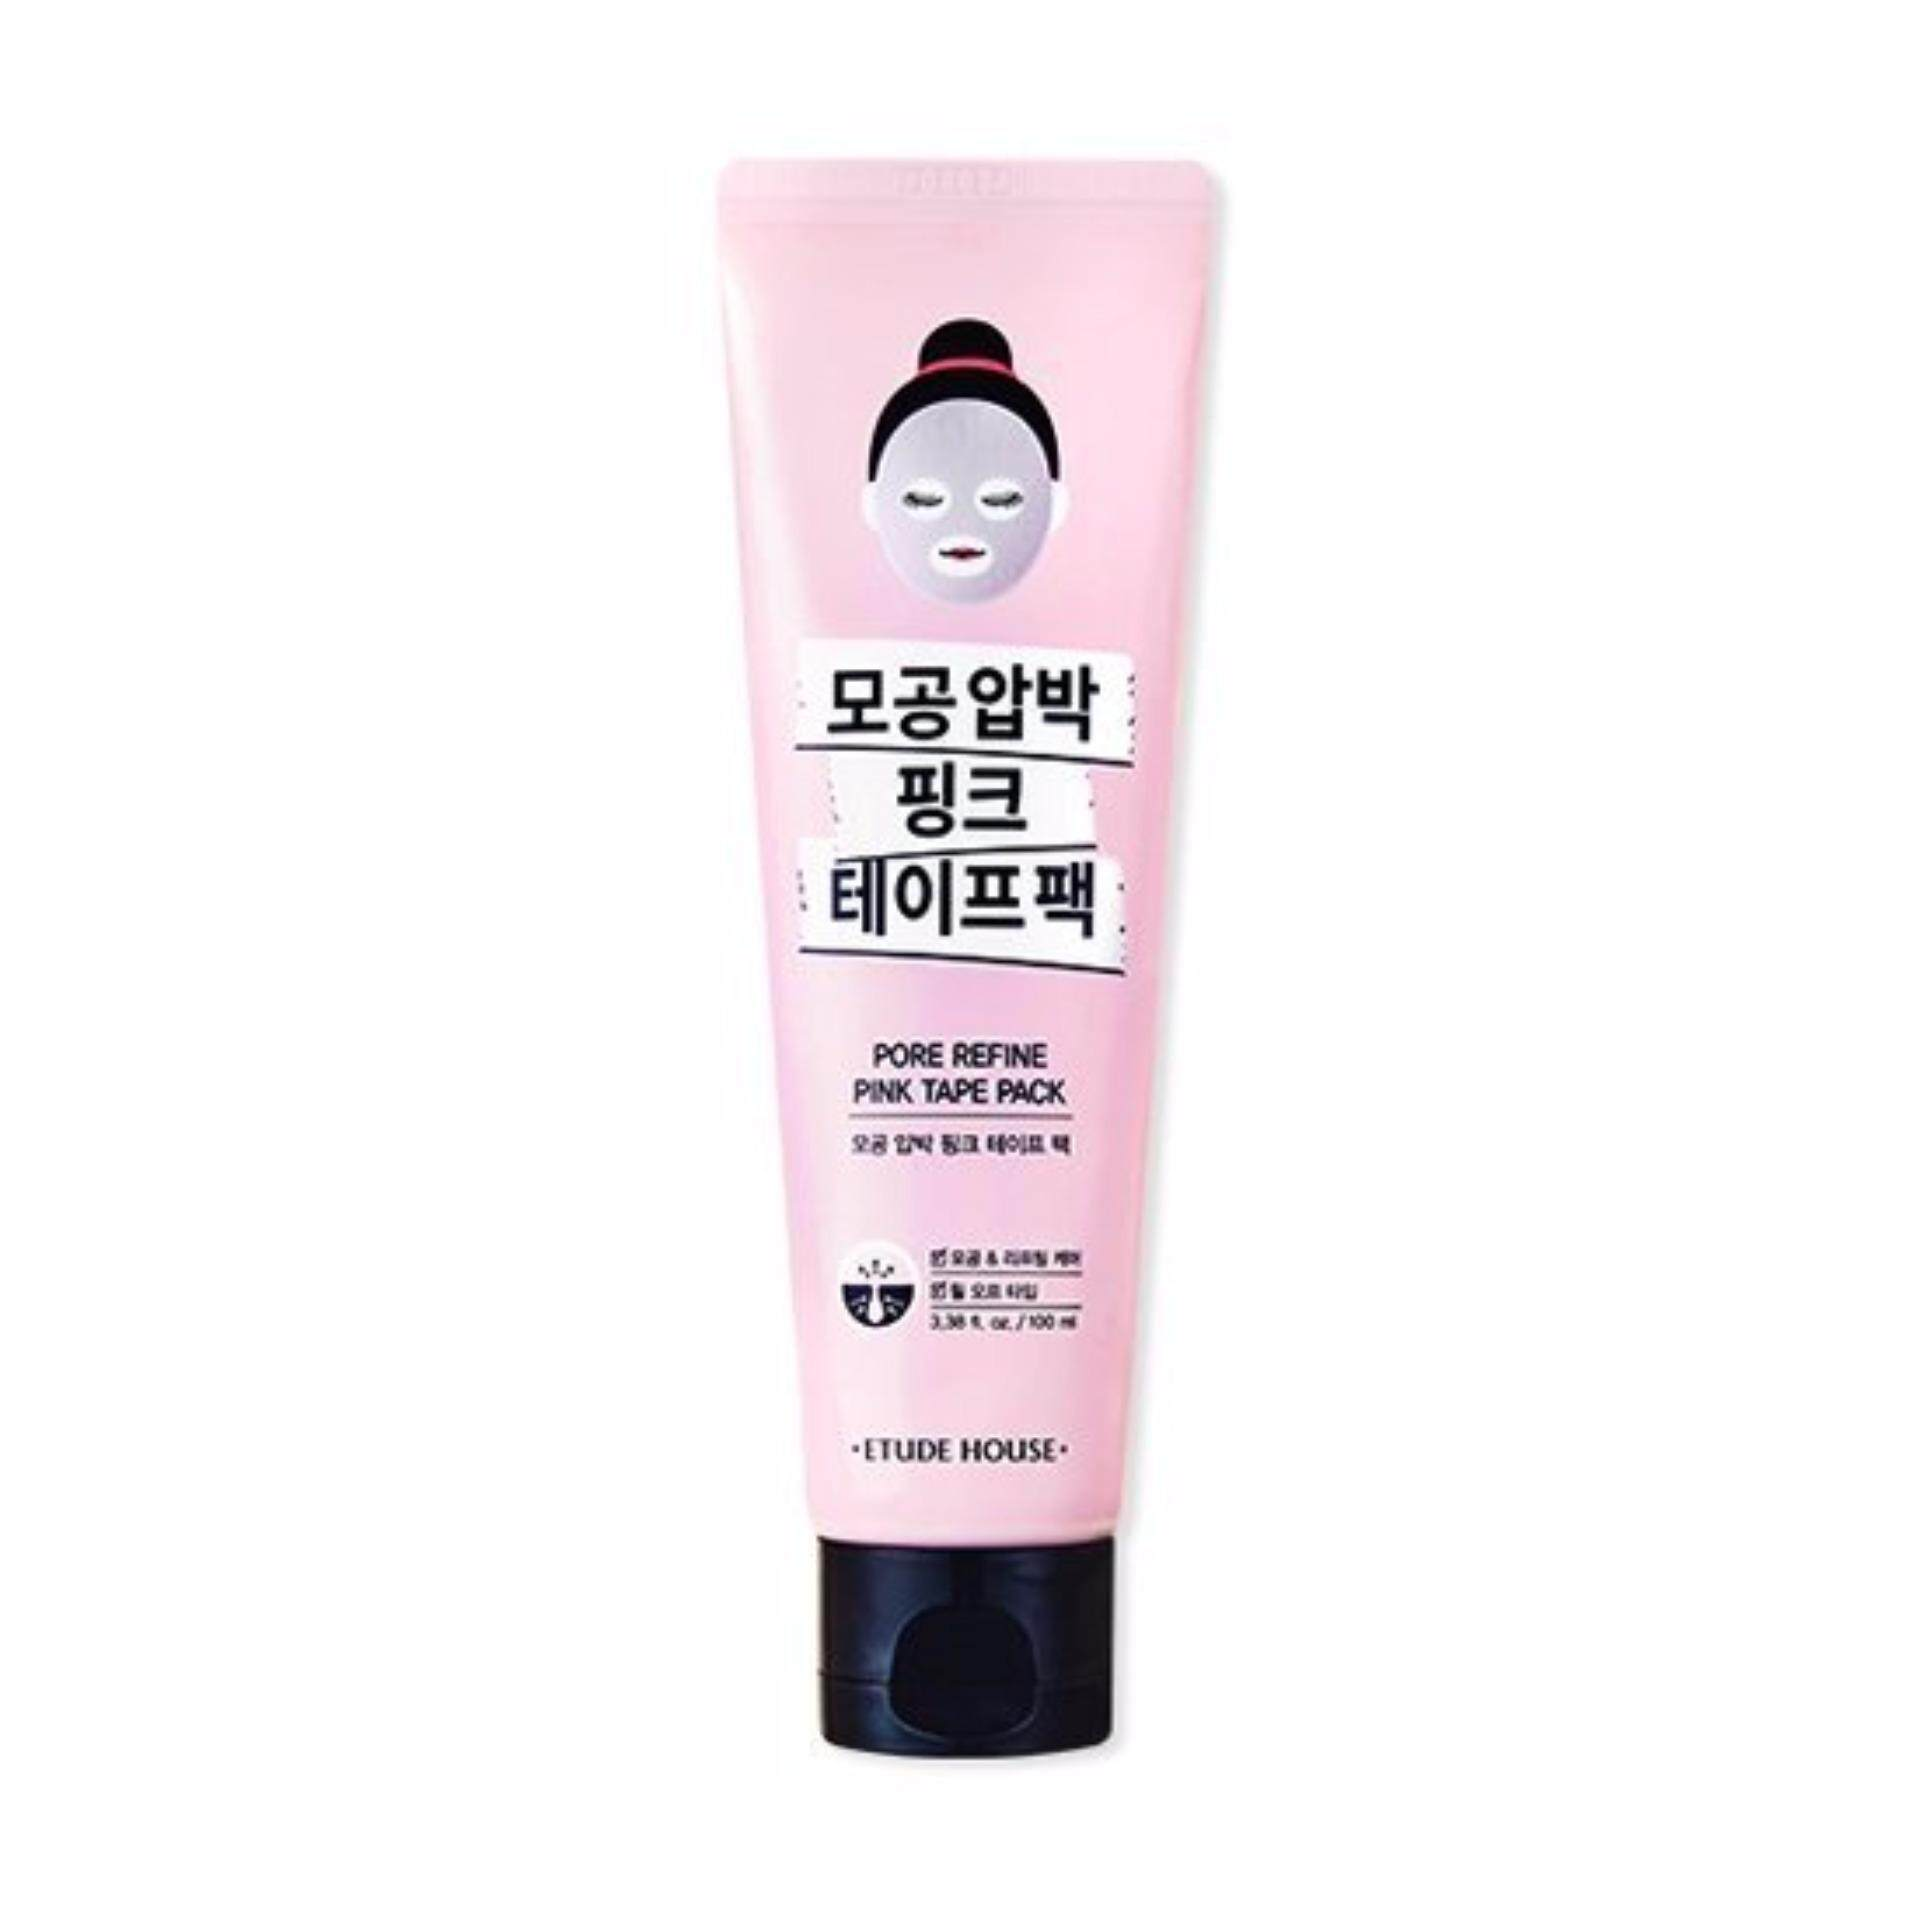 ETUDE HOUSE Pore Refine Pink Tape Pack